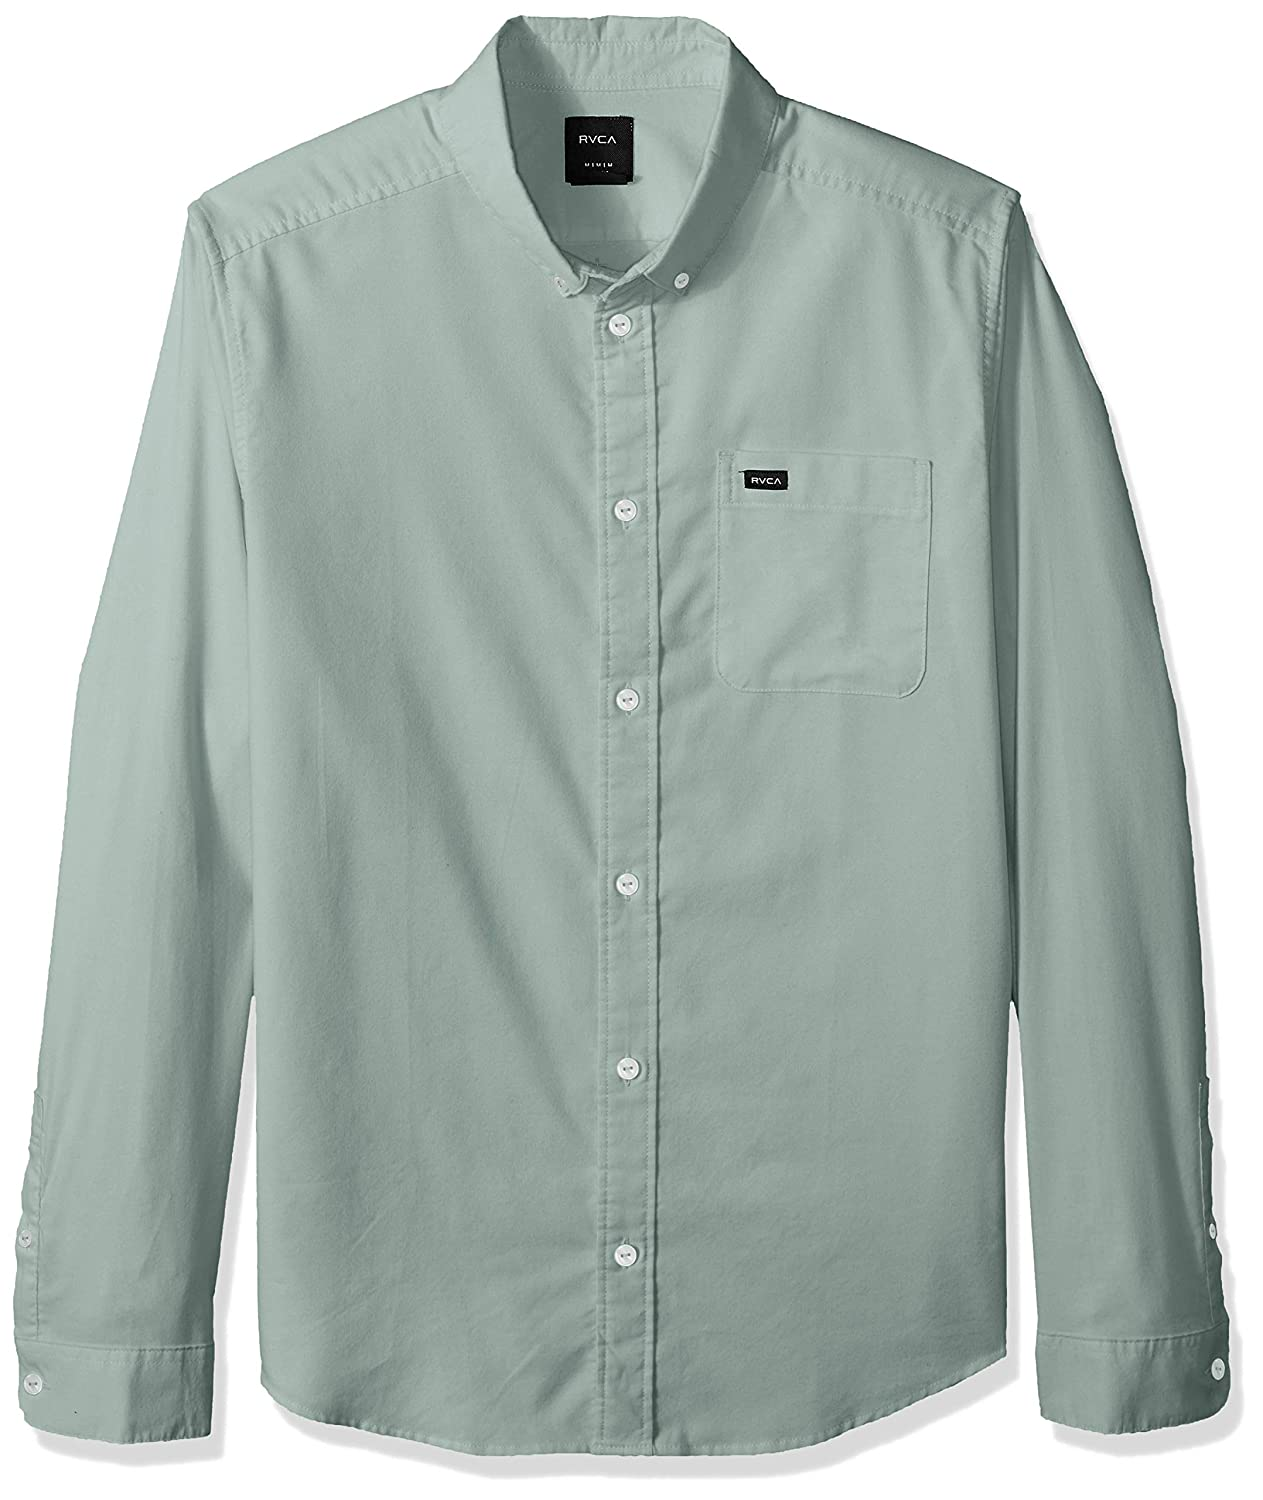 RVCA Mens Thatll Do Stretch Long Sleeve Button Up Shirt